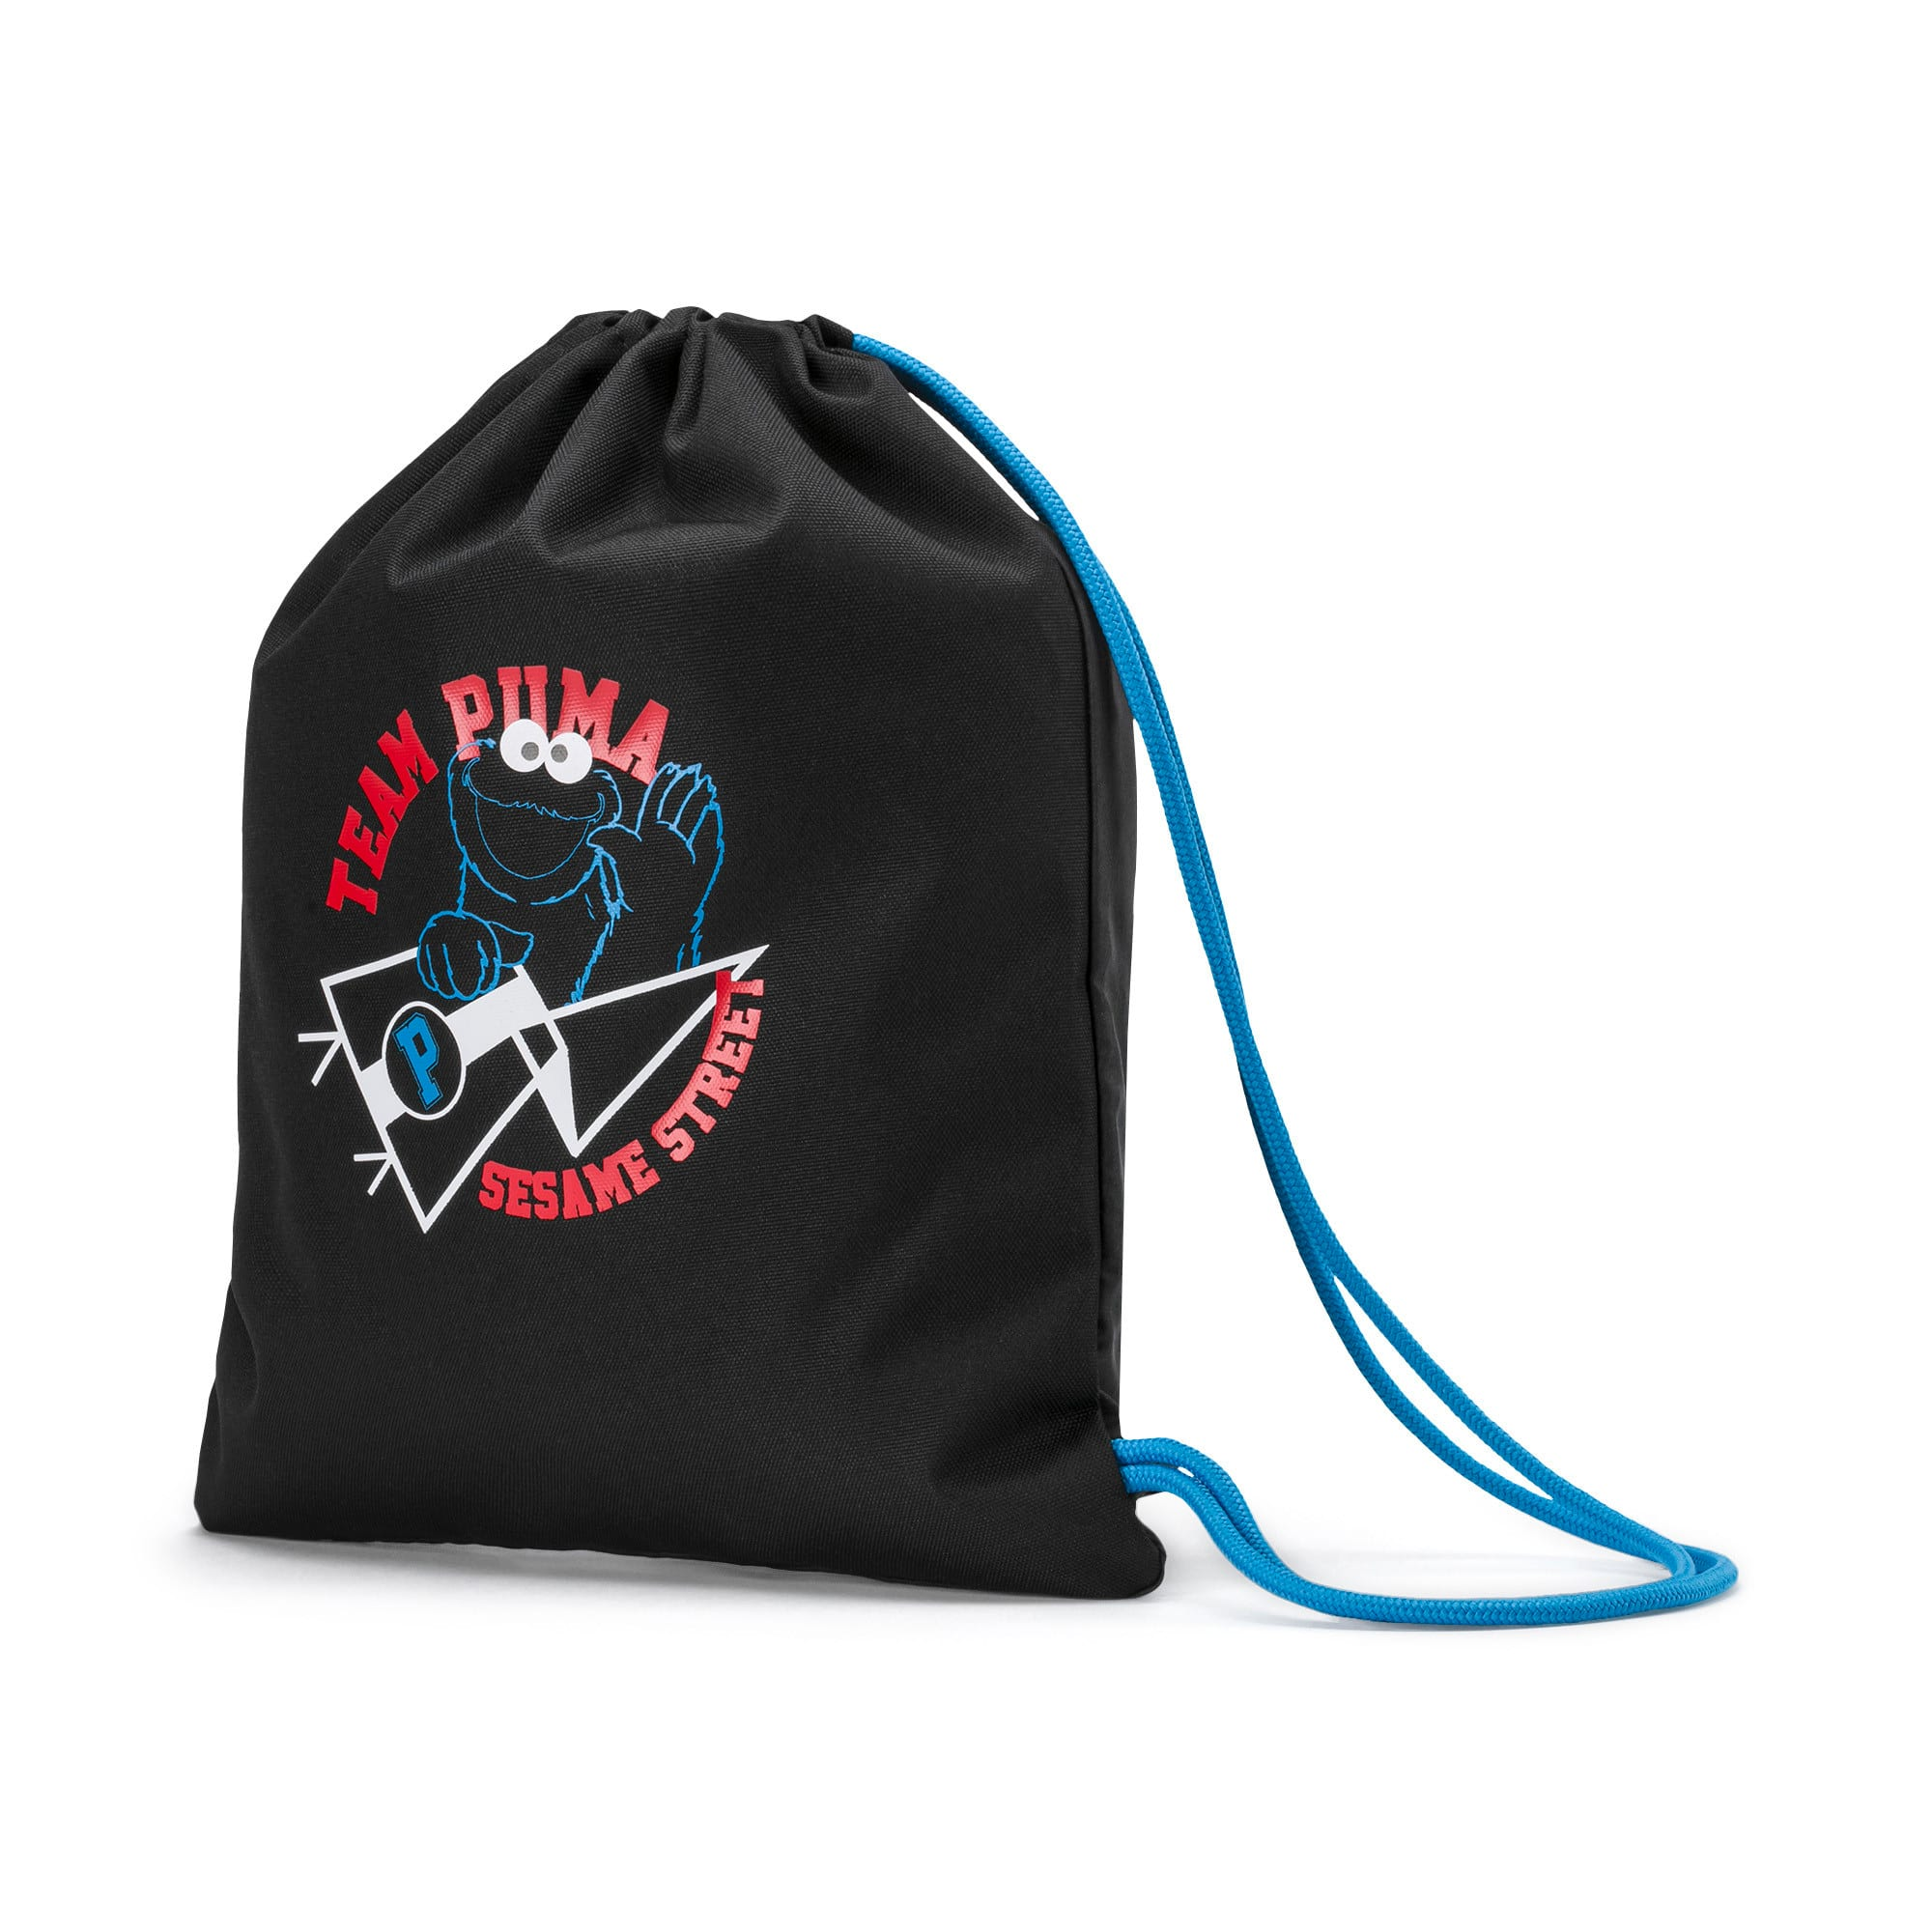 Thumbnail 1 of PUMA x SESAME STREET Kids' Sport Sack, Puma Black, medium